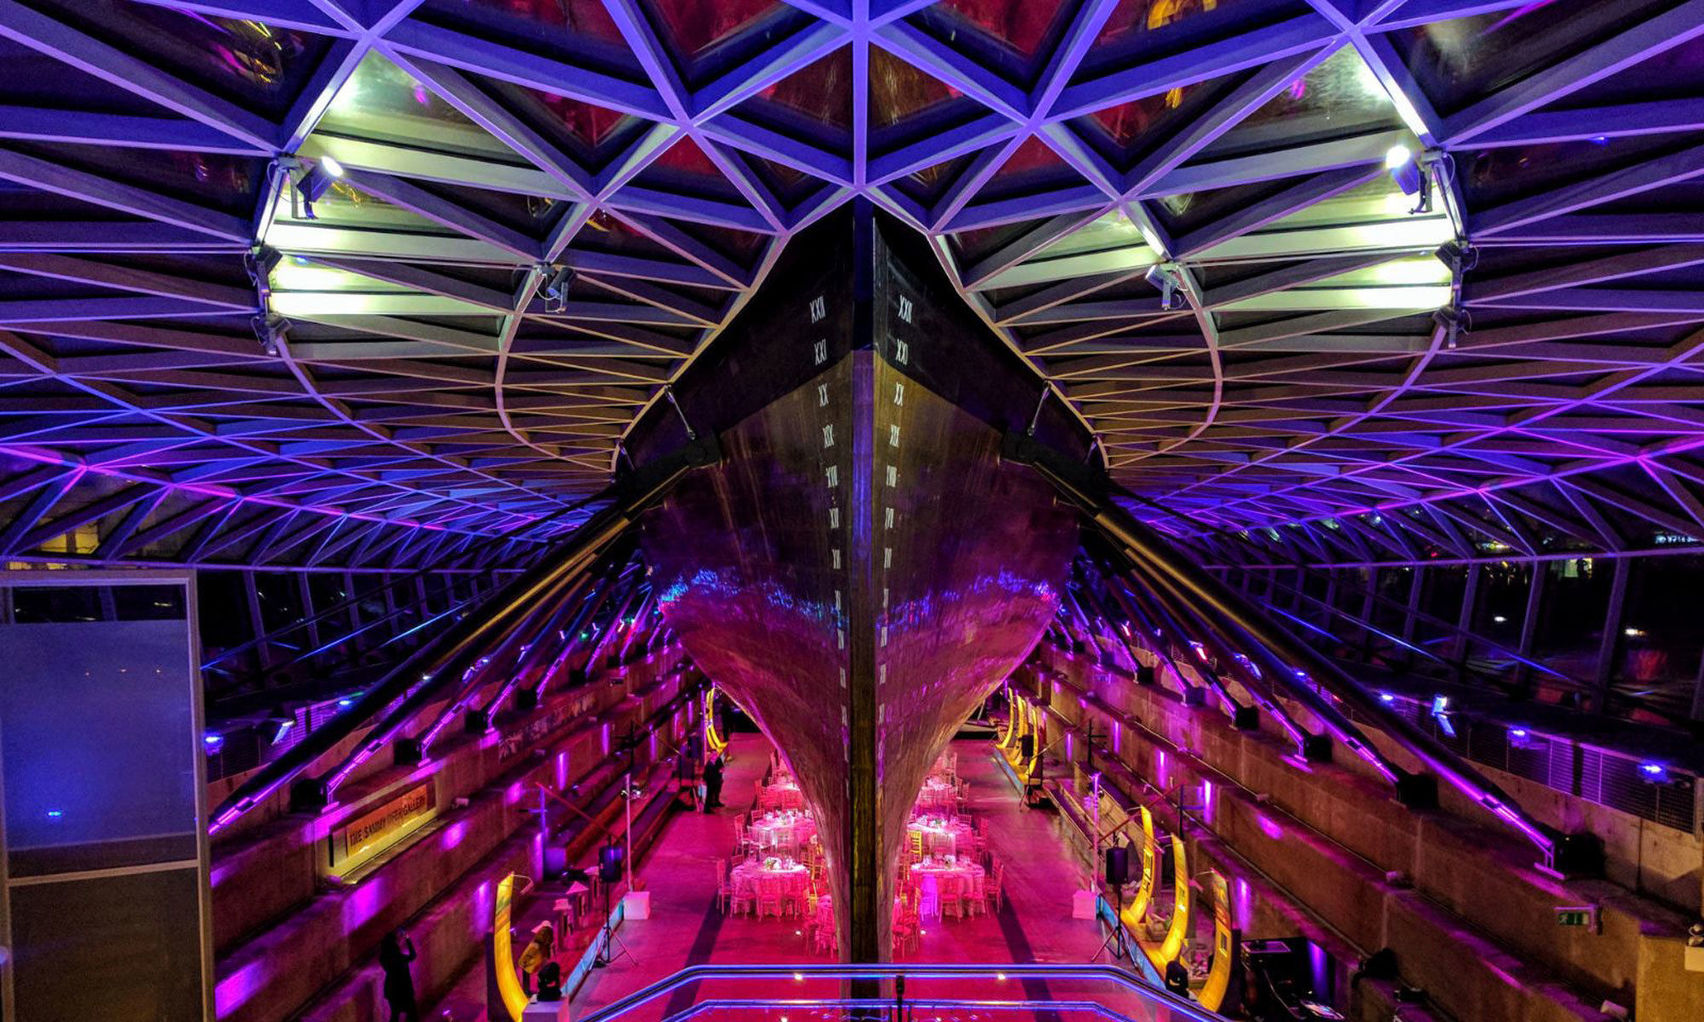 Am image of under the hull at Cutty Sark in Greenwich